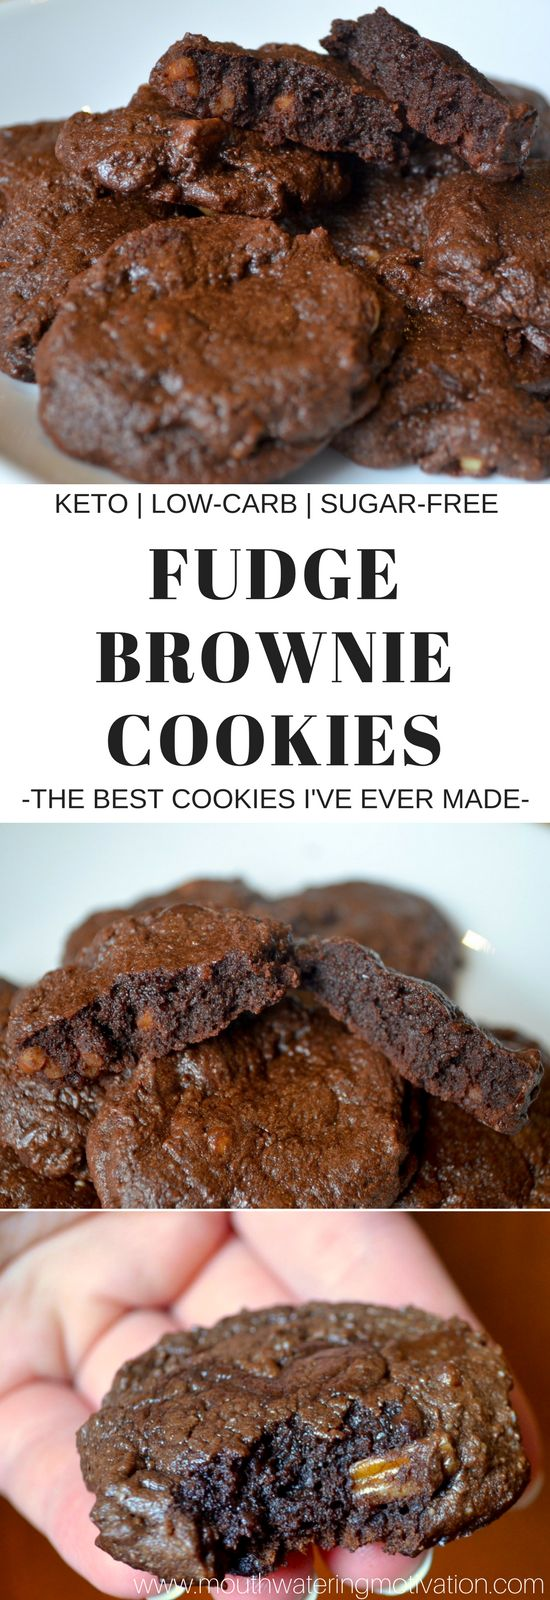 THE BEST COOKIES EVER.. I can't even begin to tell you how amazing these are.. #keto #lowcarb #sugarfree #brownie #cookie